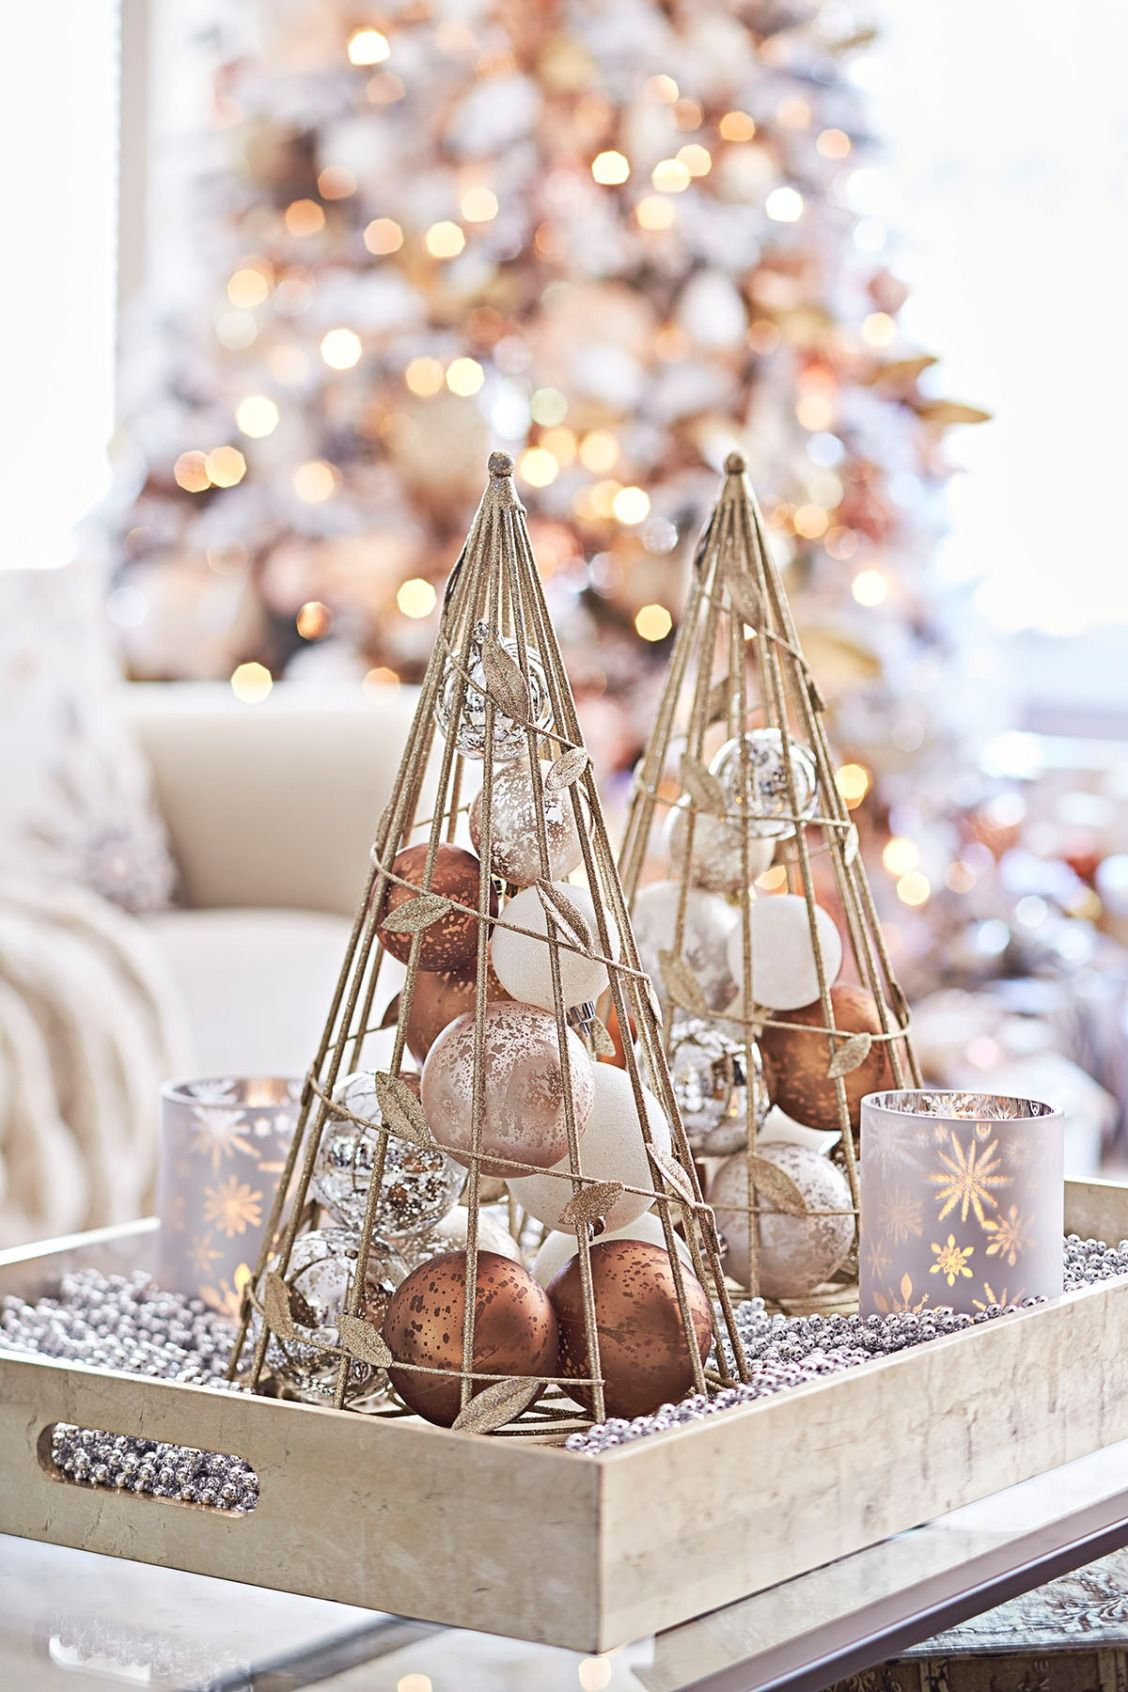 Diy Projects And Ideas Christmas Coffee Table Decor Coffee Table Centerpieces Christmas Coffee